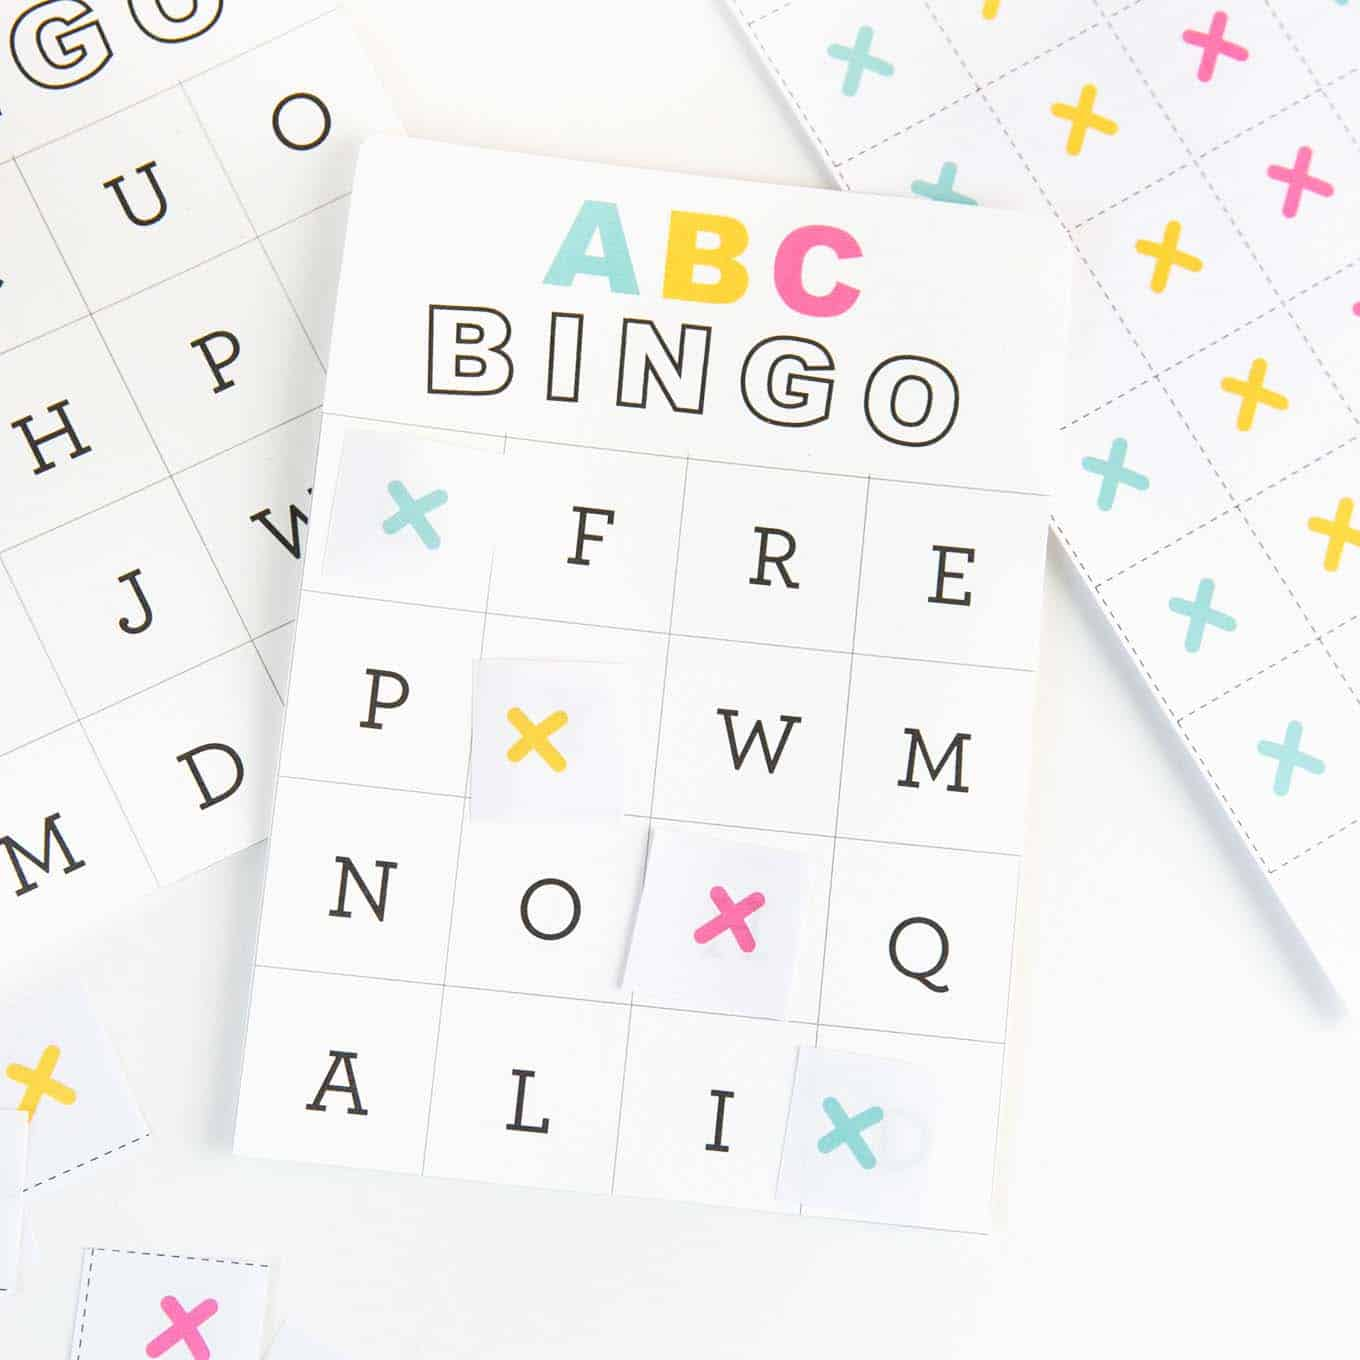 photo regarding Alphabet Line Printable called Free of charge Printable Alphabet Bingo - Style Take in Repeat